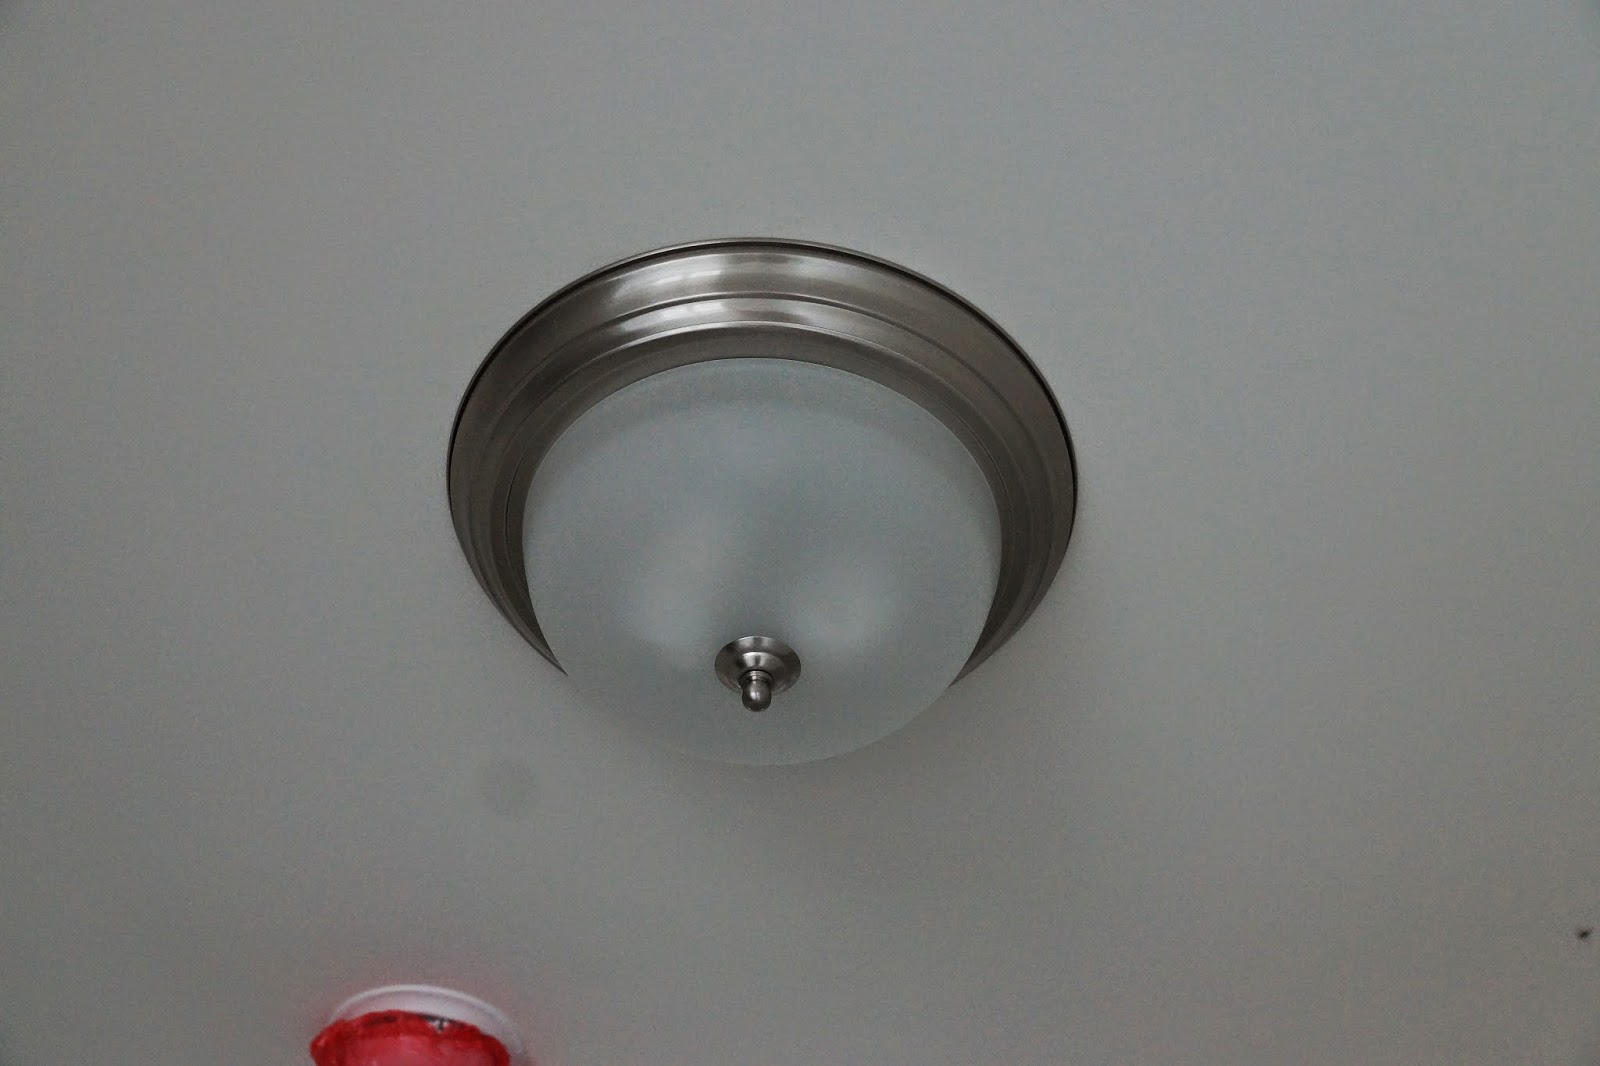 A picture of light fixture used in the open areas of the house